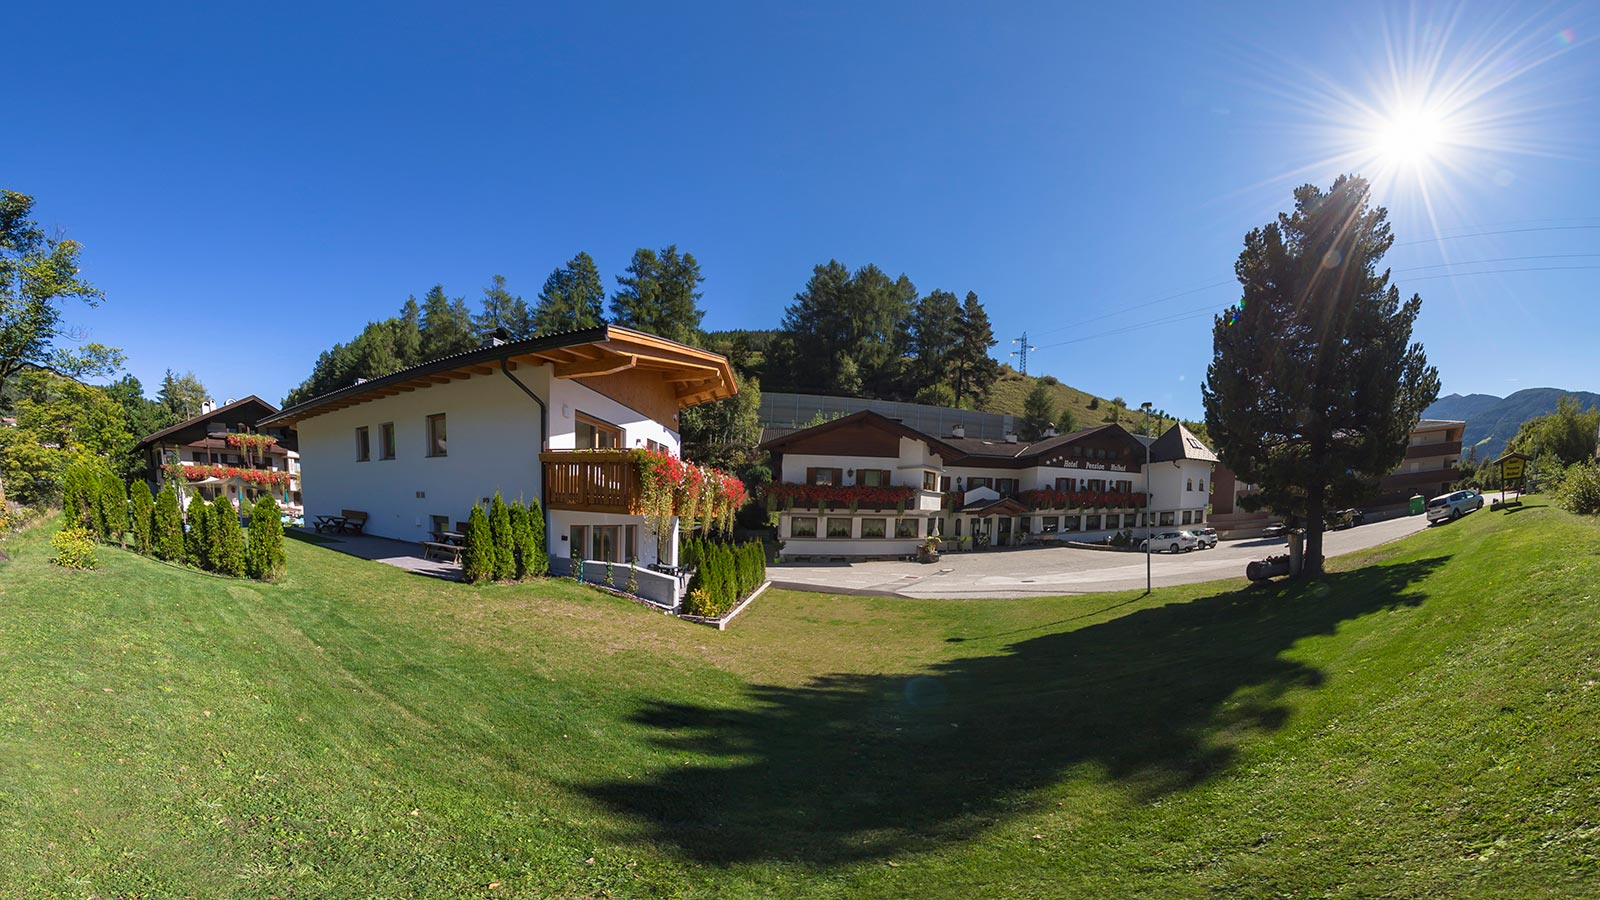 Hotel Maibad in Sterzing with its apartments on a warm sunny day